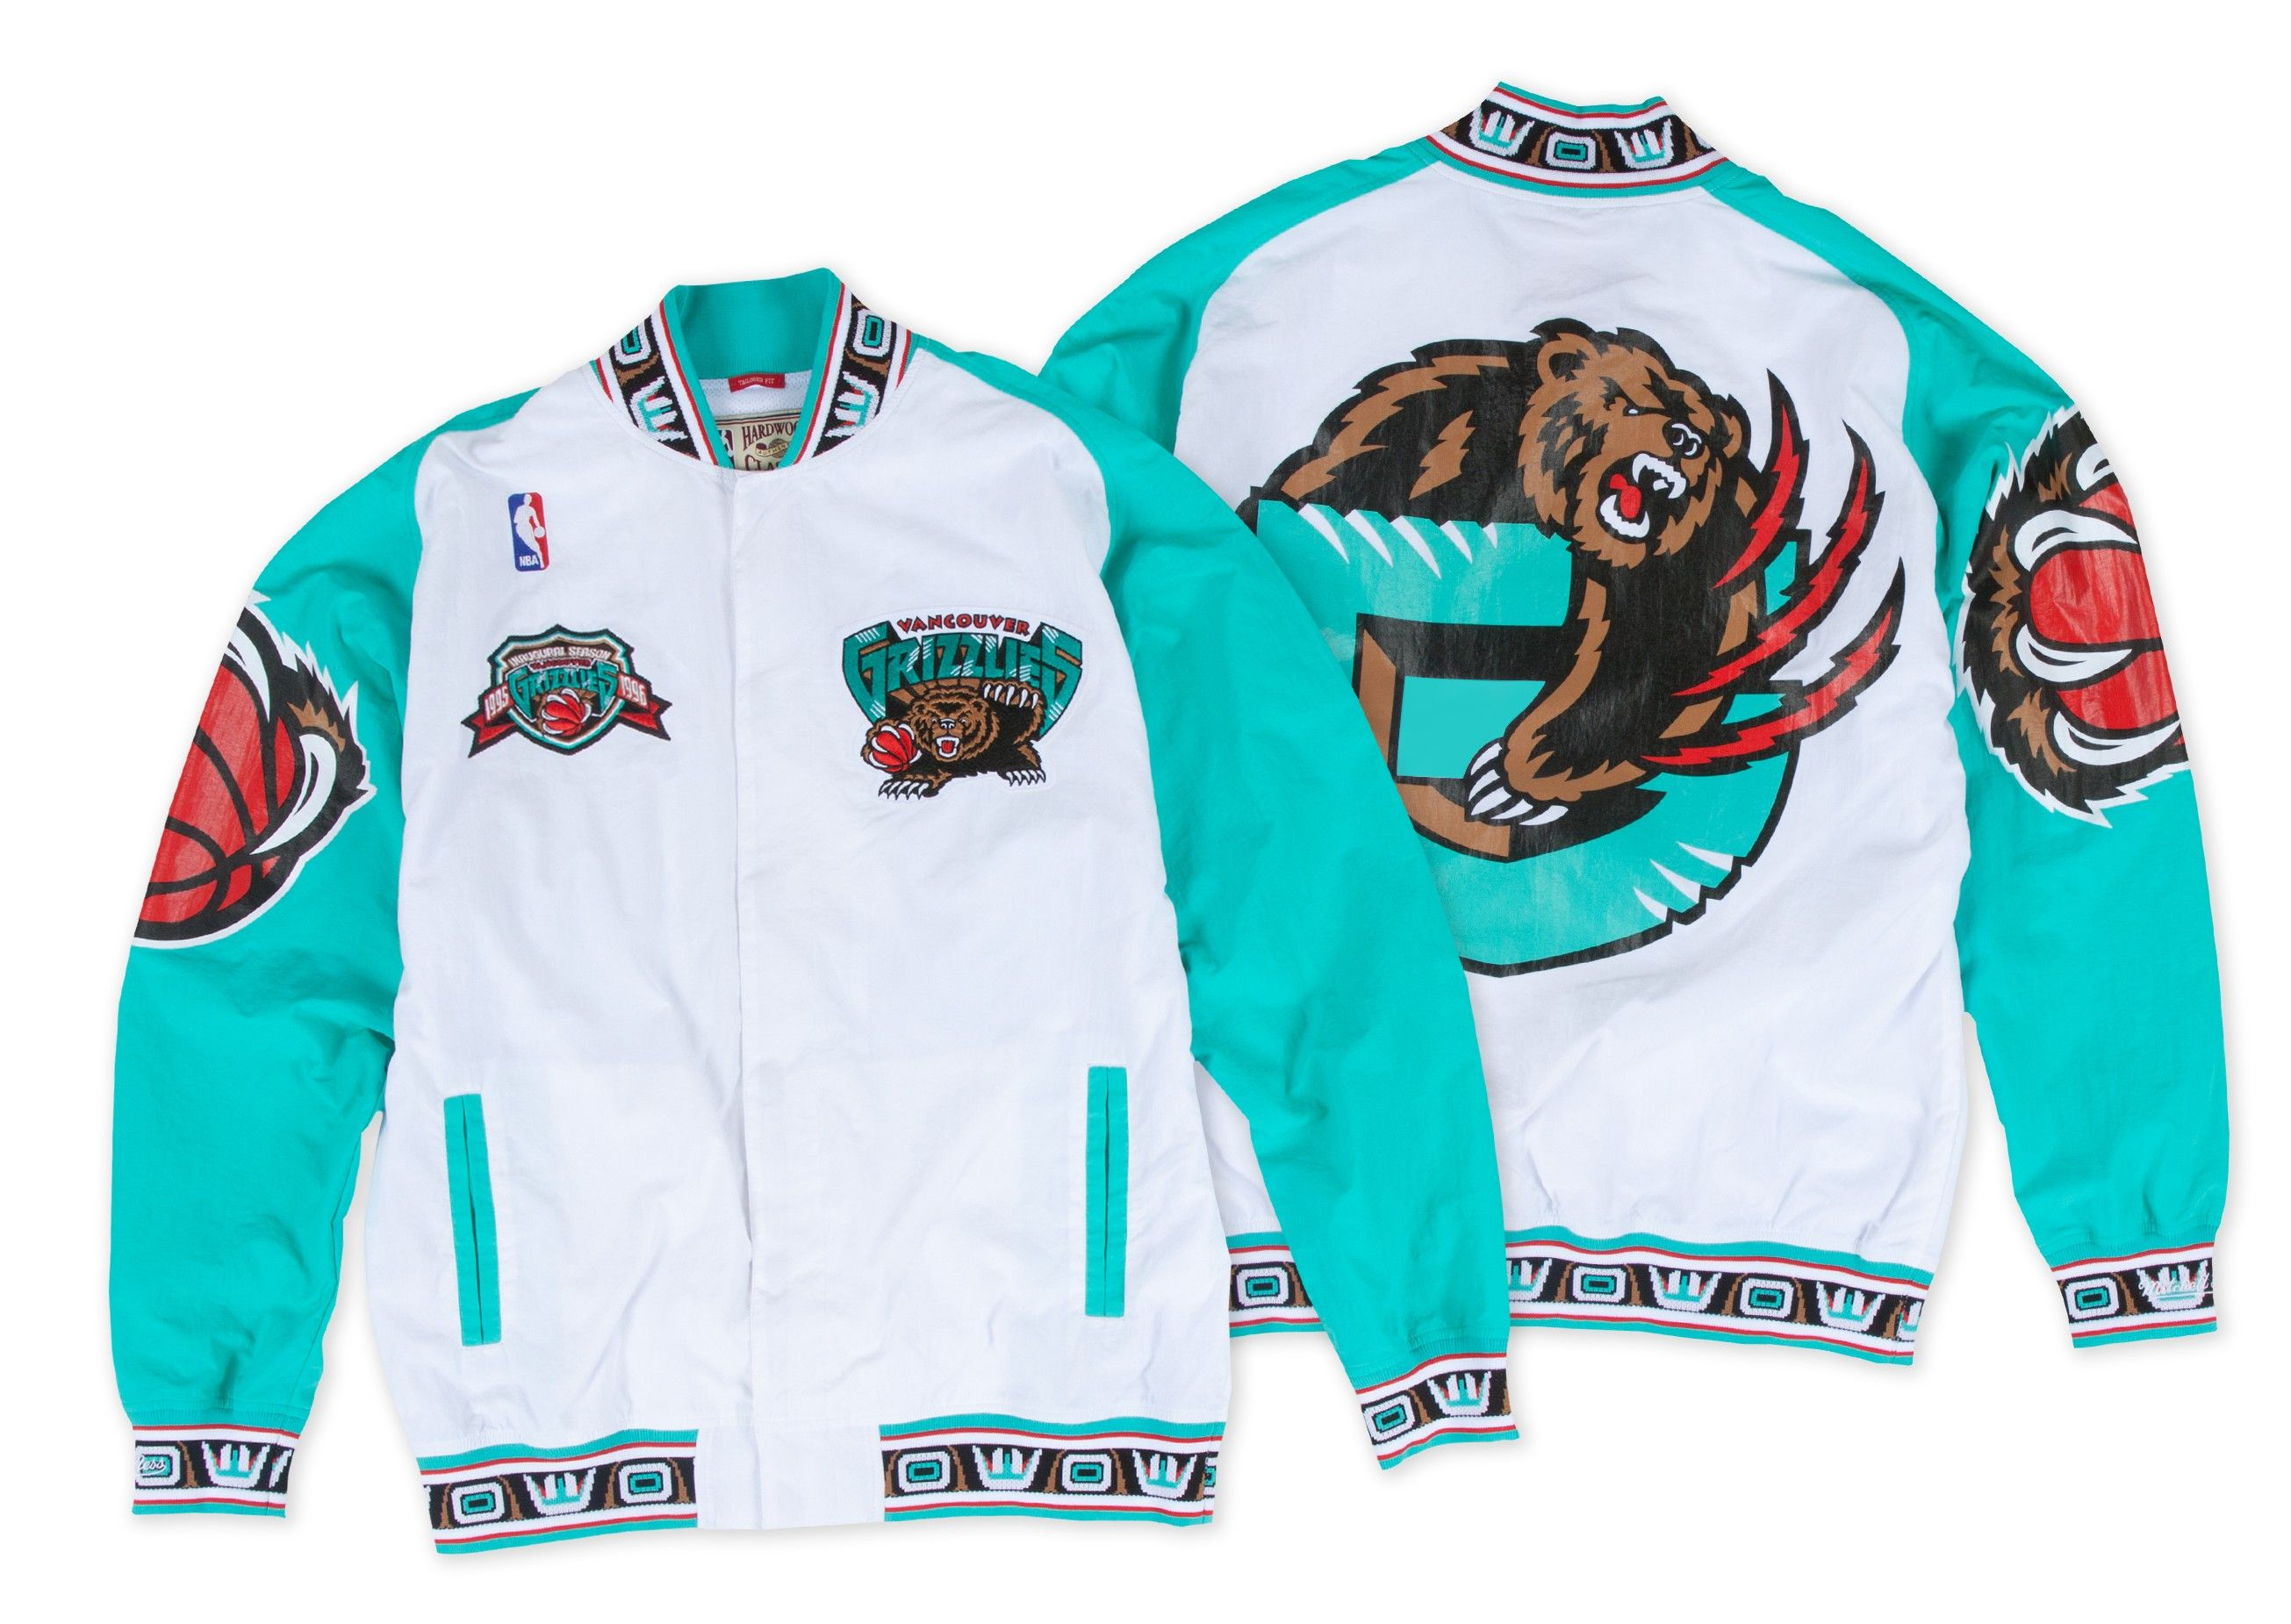 online store b7ace 65ff6 1995-96 Authentic Warm Up Jckt Vancouver Grizzlies - Shop Mitchell   Ness  NBA Outerwear and Jackets